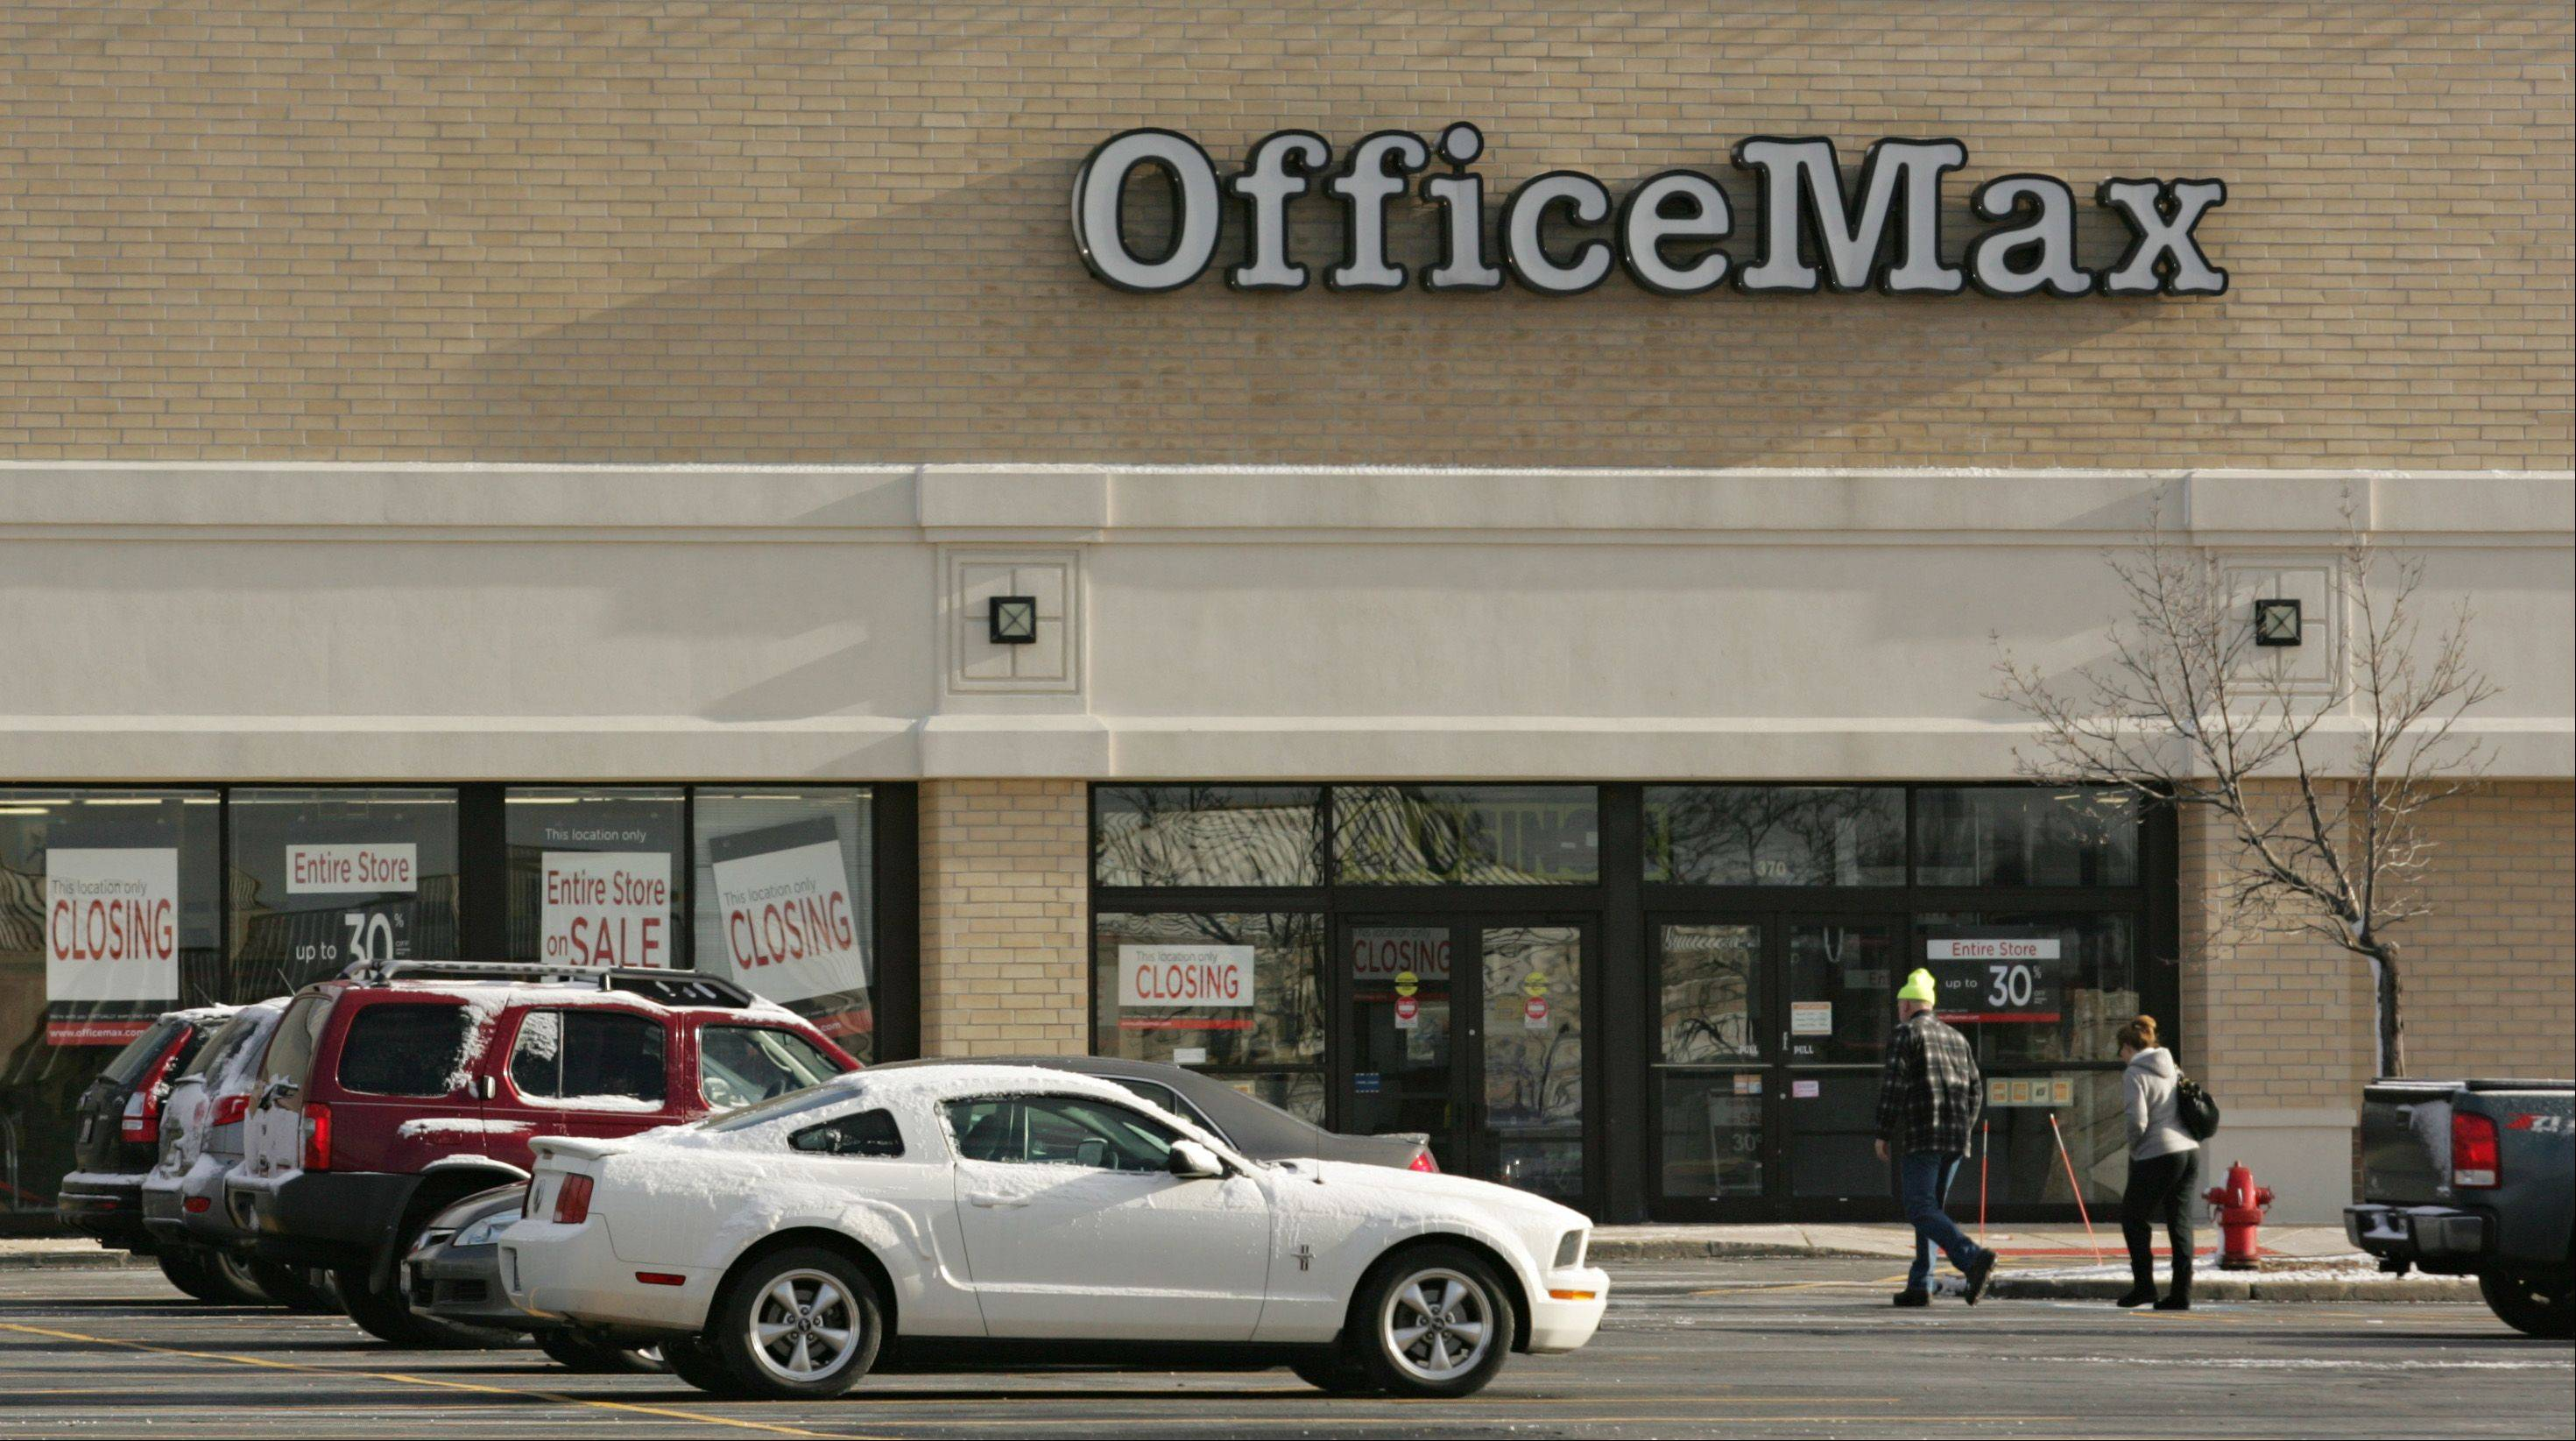 NEW YORK � The Wall Street Journal is reporting that Naperville-based OfficeMax Inc. and Office Depot Inc. are talking about combining their companies.